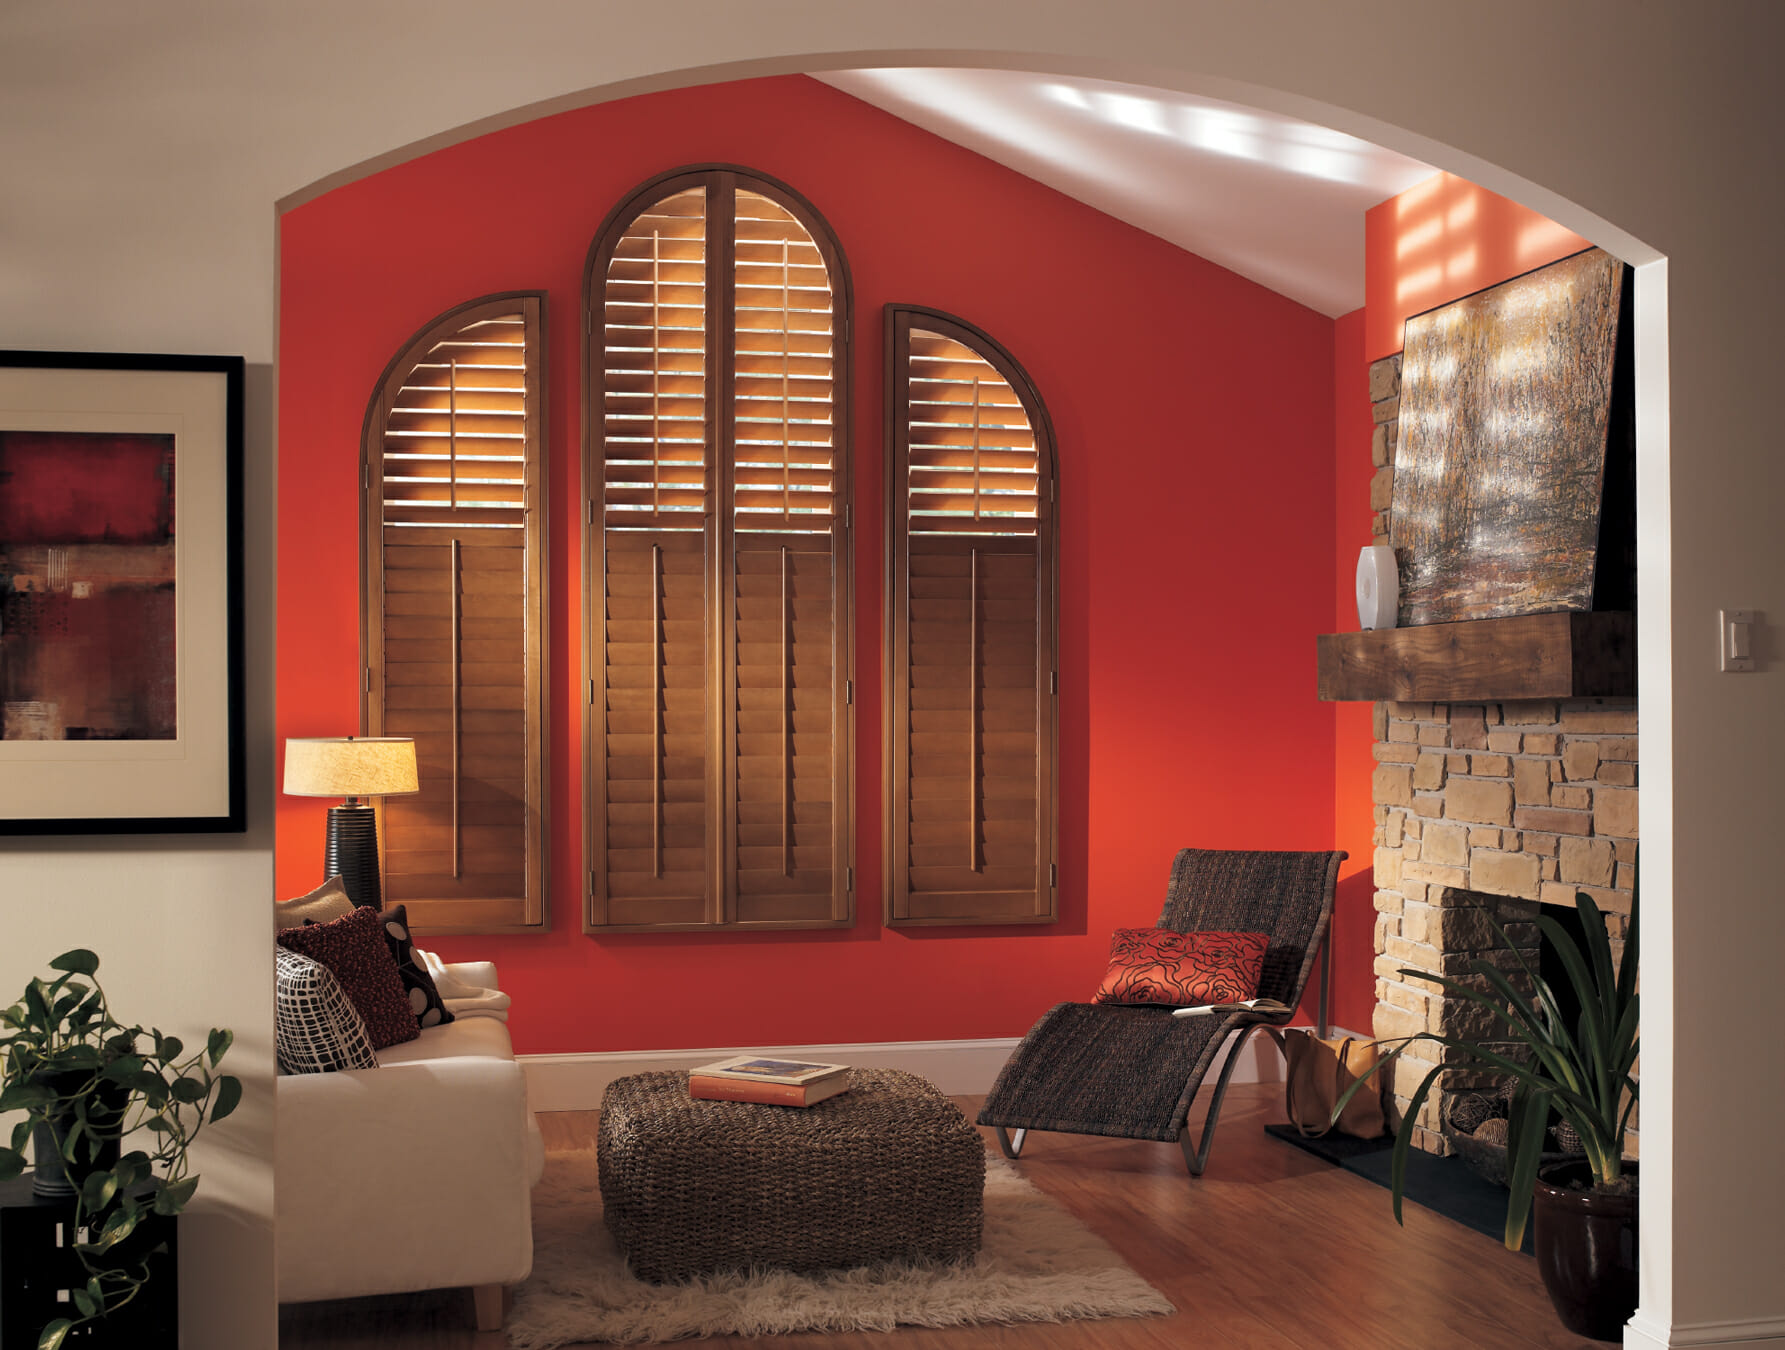 plantation shutters for arched windows kitchen plantation shutters can be custom fit for any window arched blind mice coverings